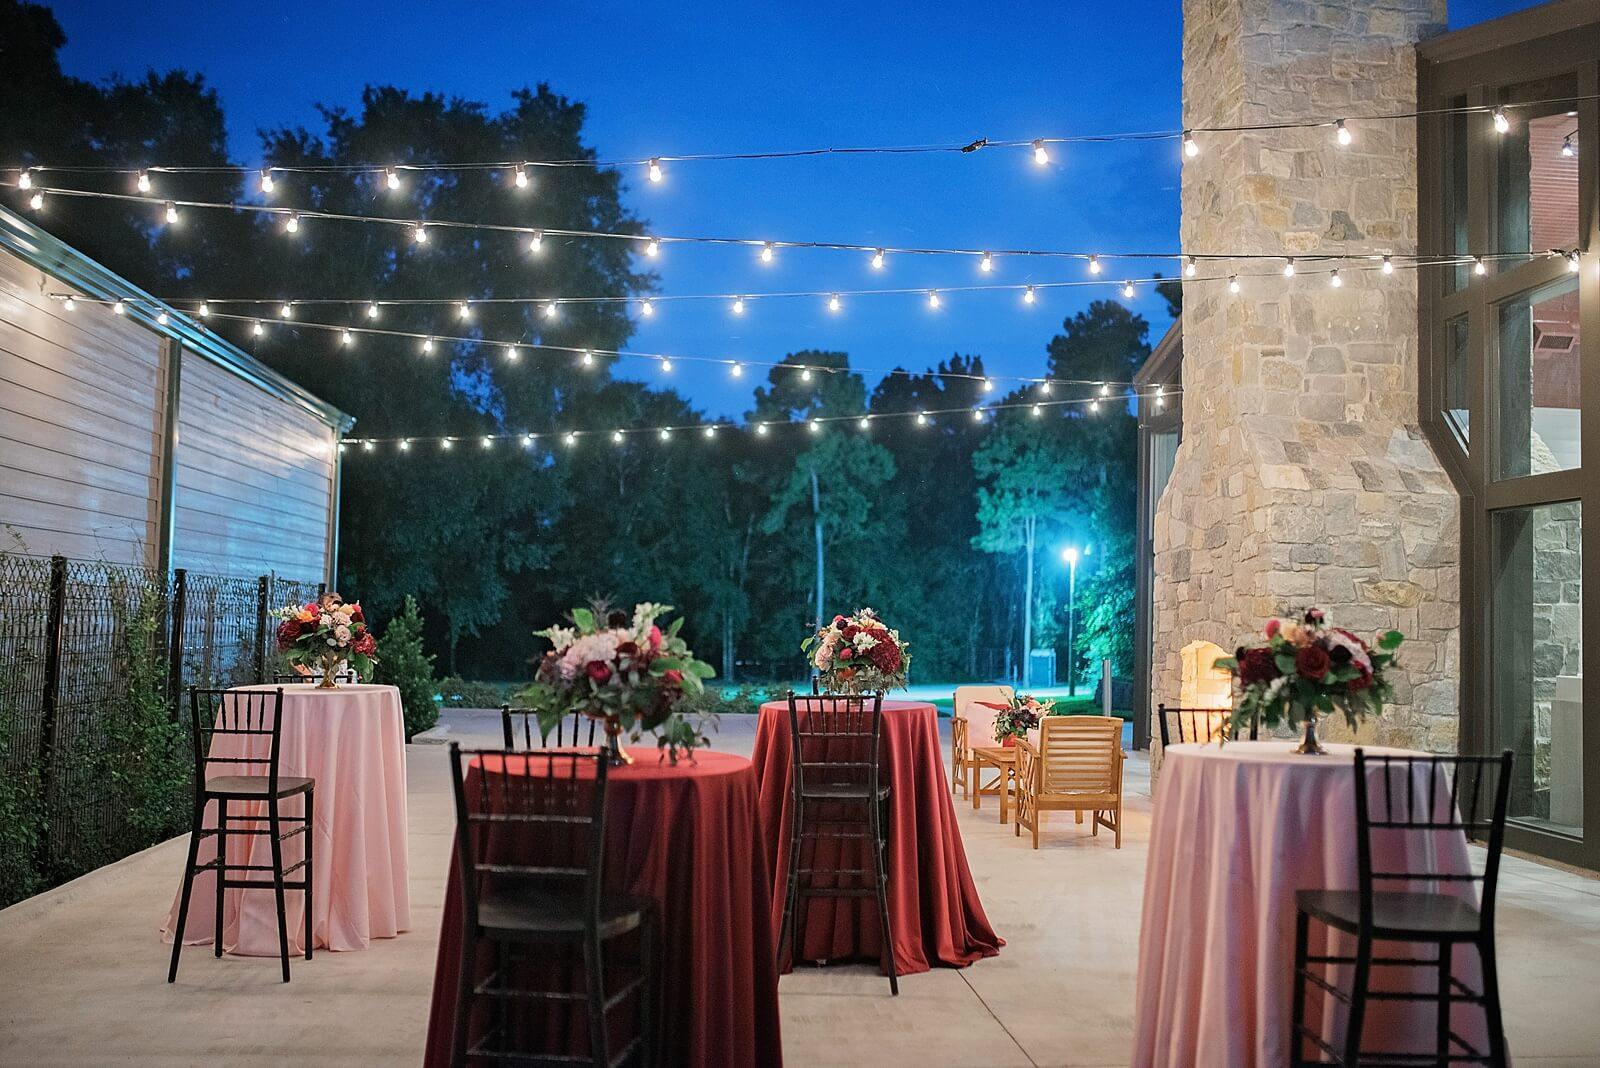 Nighttime cocktail hour setup at The Annex wedding venue